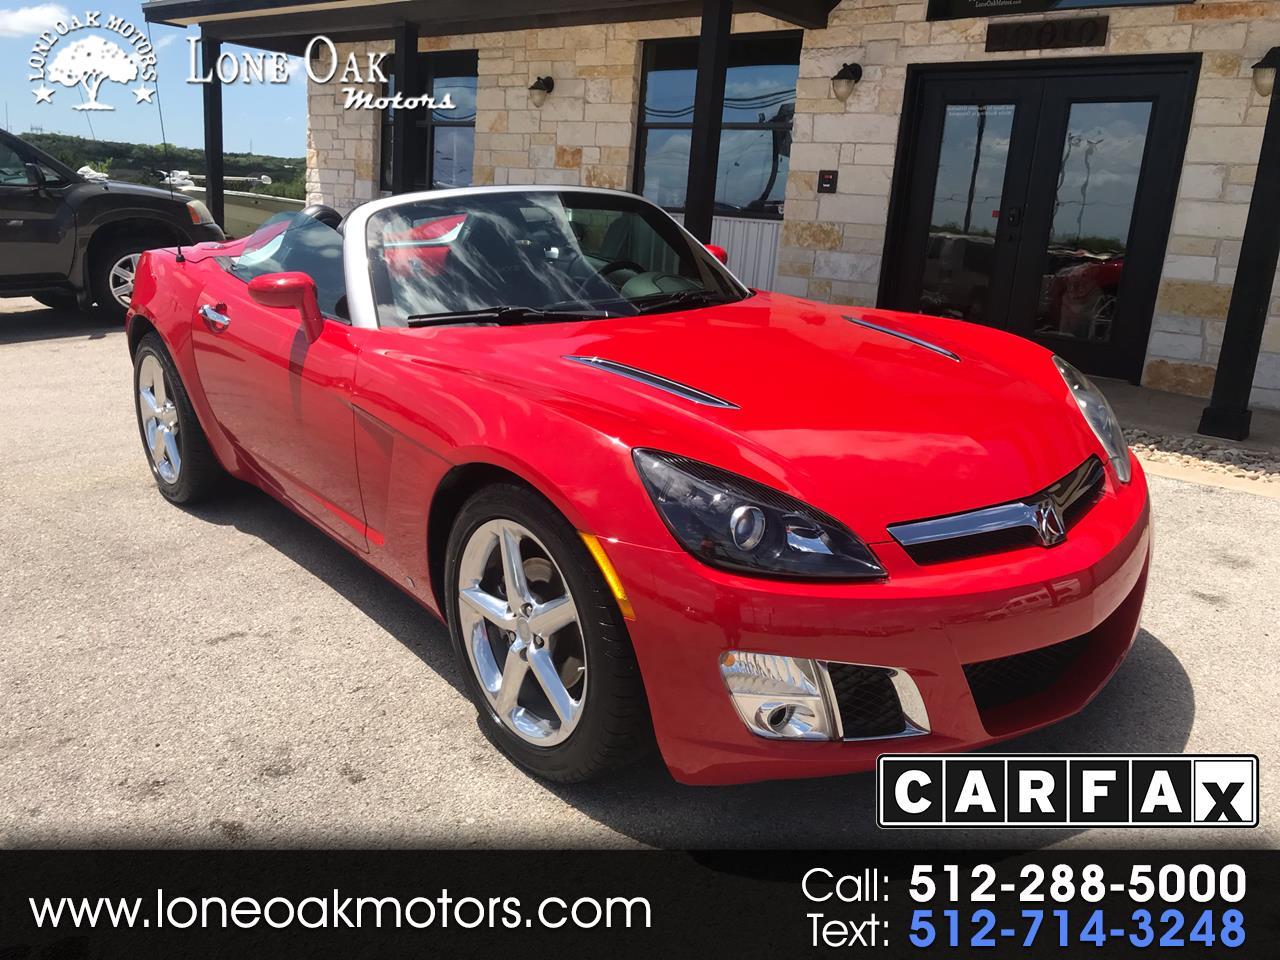 2008 Saturn Sky 2dr Conv Red Line